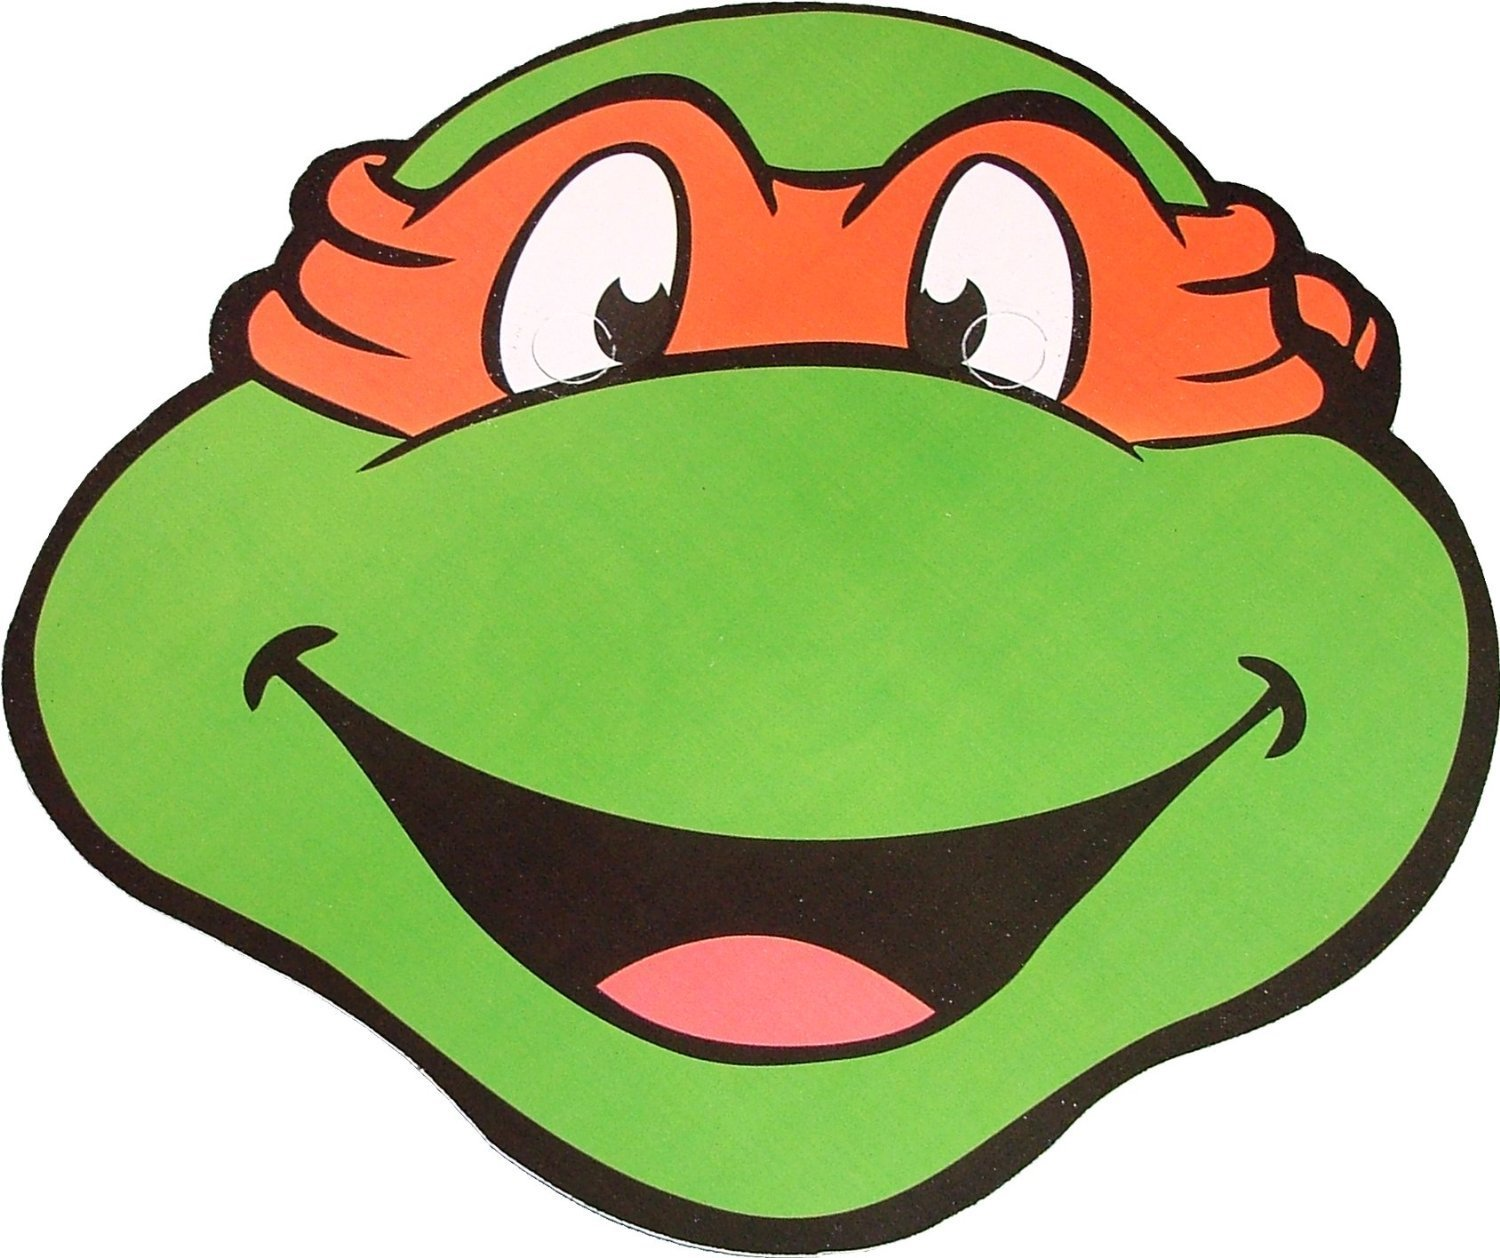 Ninja Turtles Face Pictures Free Cliparts That You Can Download To